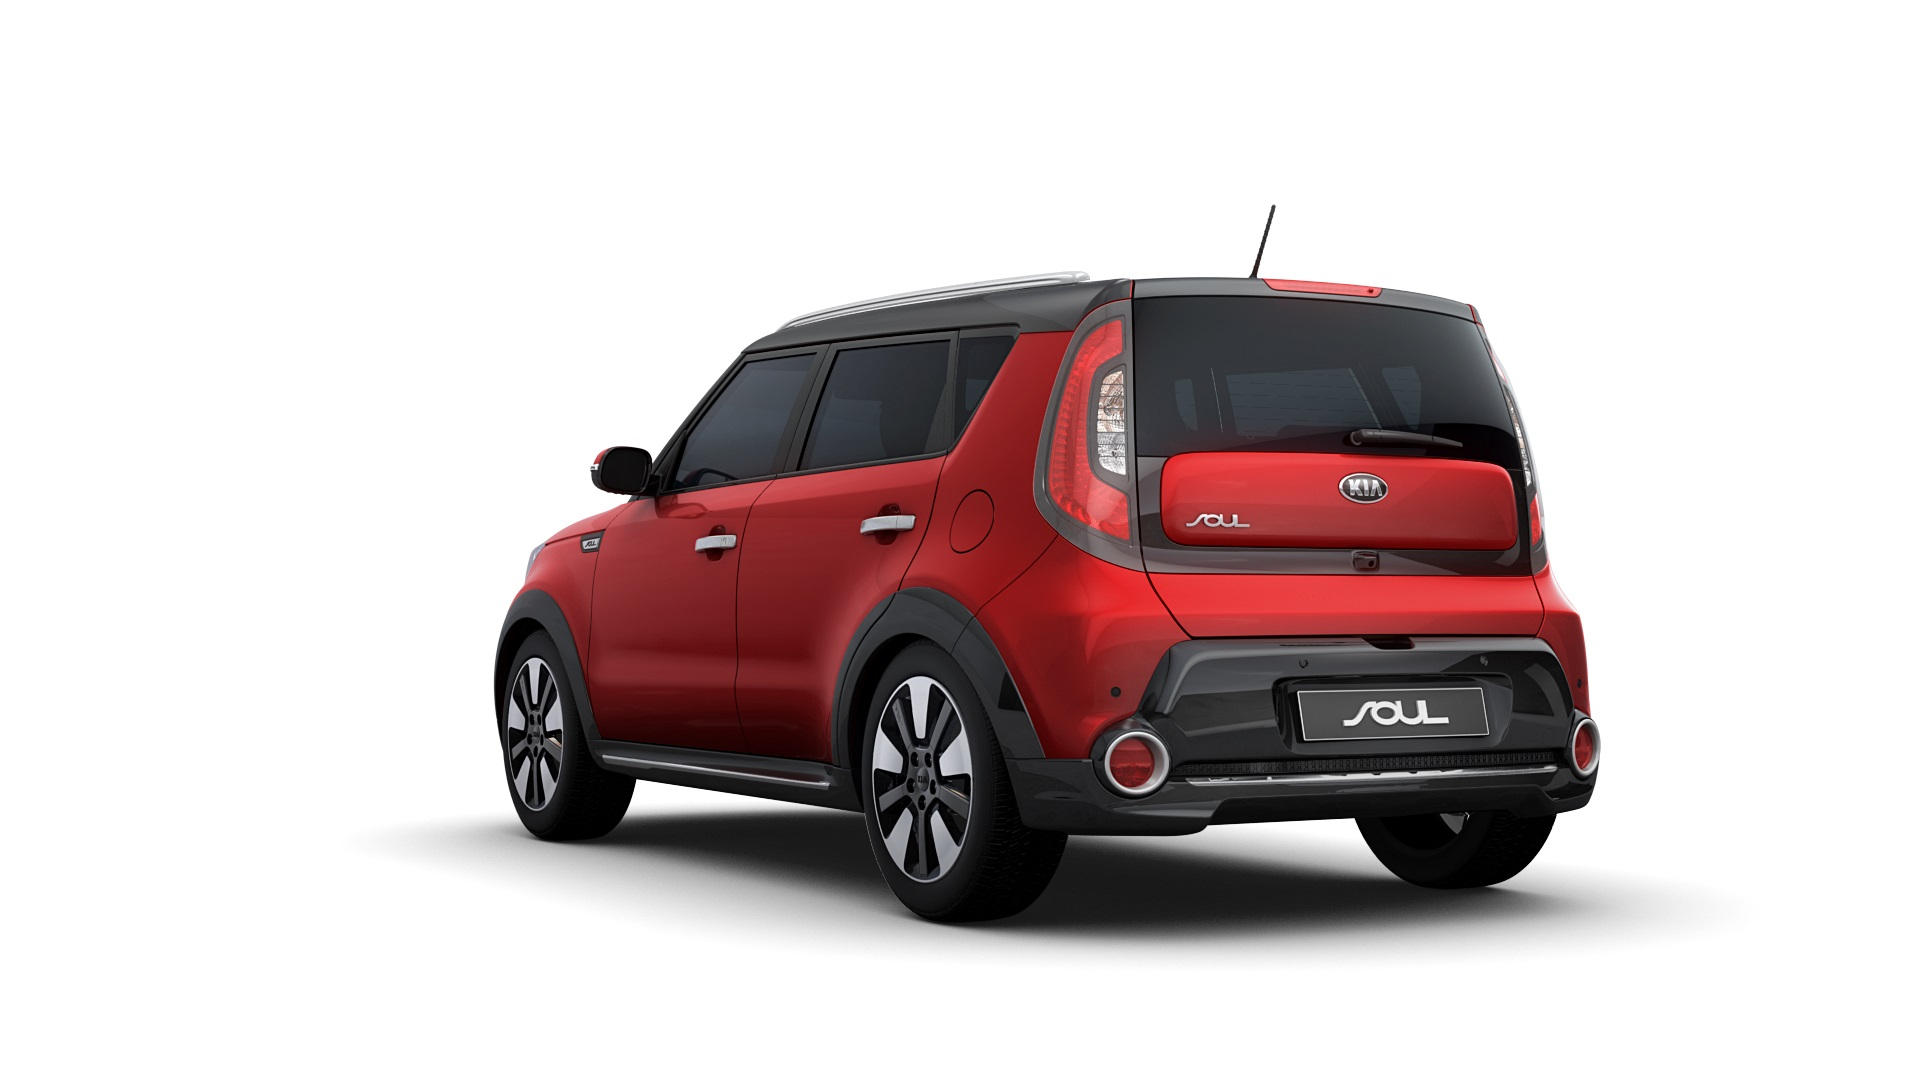 kia soul specs photos 2013 2014 2015 2016 2017 2018 autoevolution. Black Bedroom Furniture Sets. Home Design Ideas